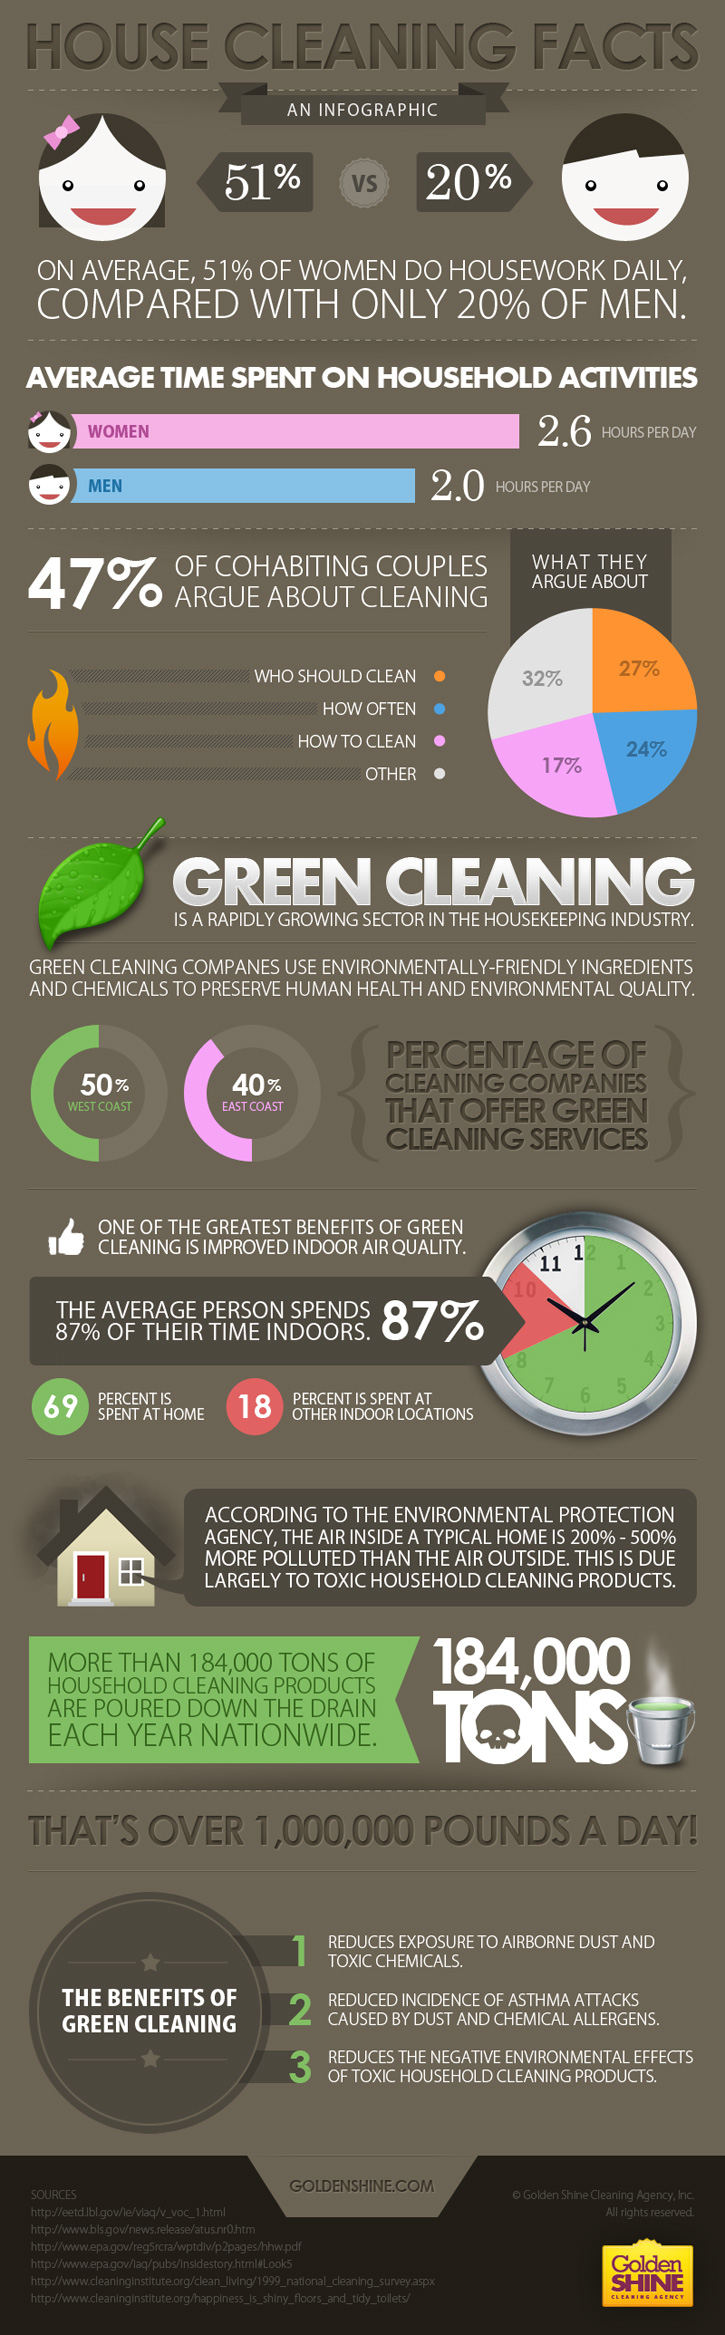 House Cleaning Facts and Green Cleaning